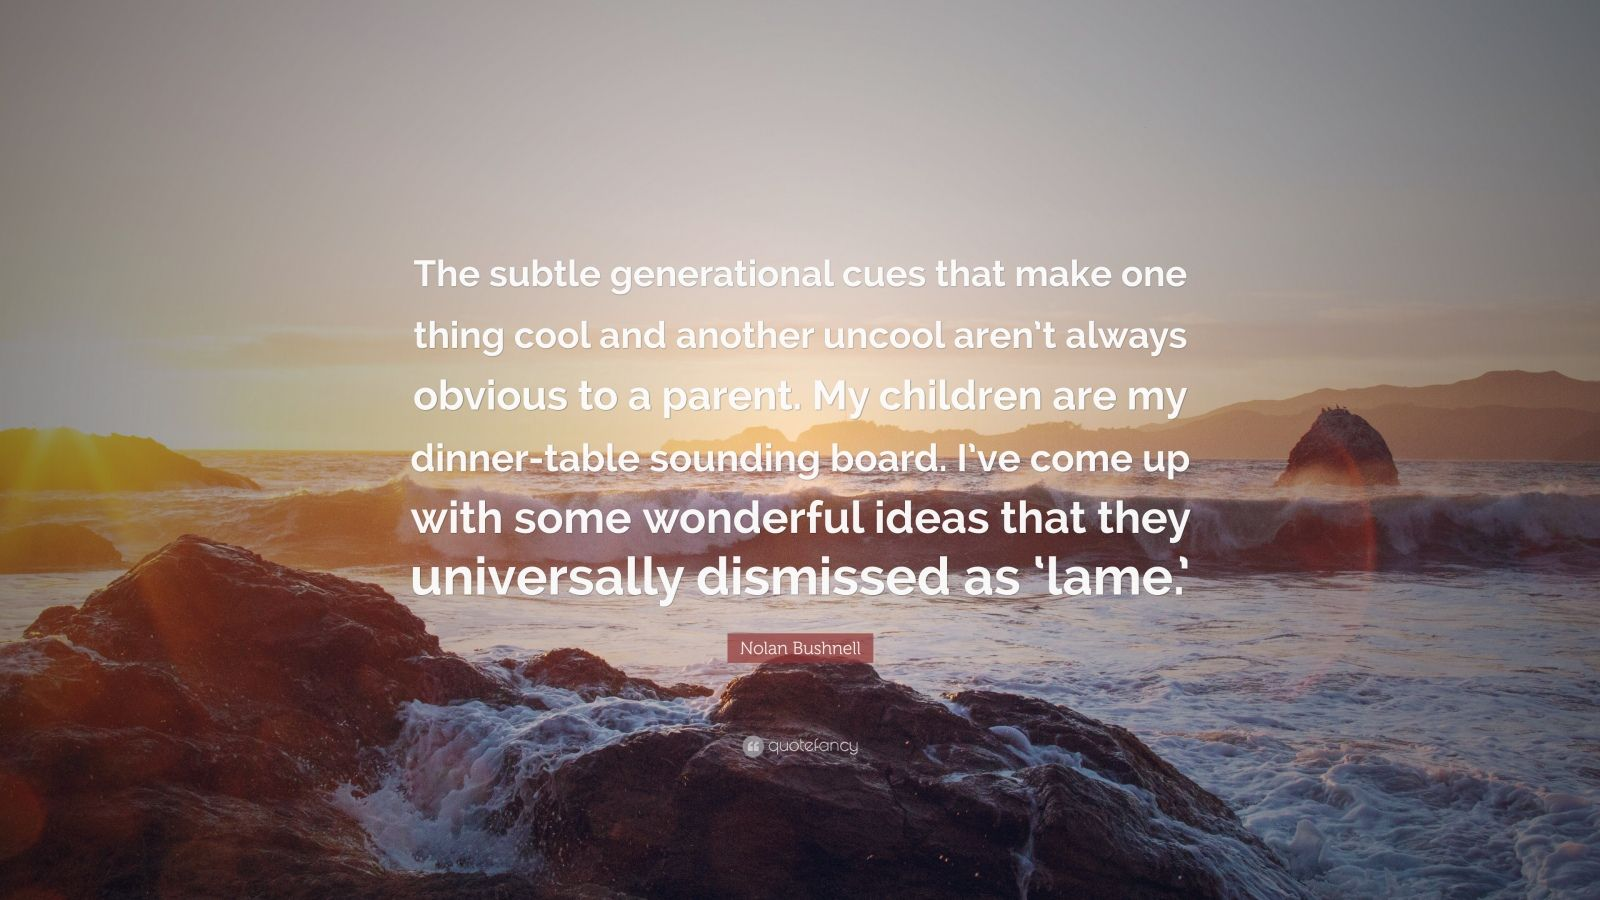 """Nolan Bushnell Quote: """"The subtle generational cues that make one thing cool and another uncool aren't always obvious to a parent. My children are my dinner-table sounding board. I've come up with some wonderful ideas that they universally dismissed as 'lame.'"""""""